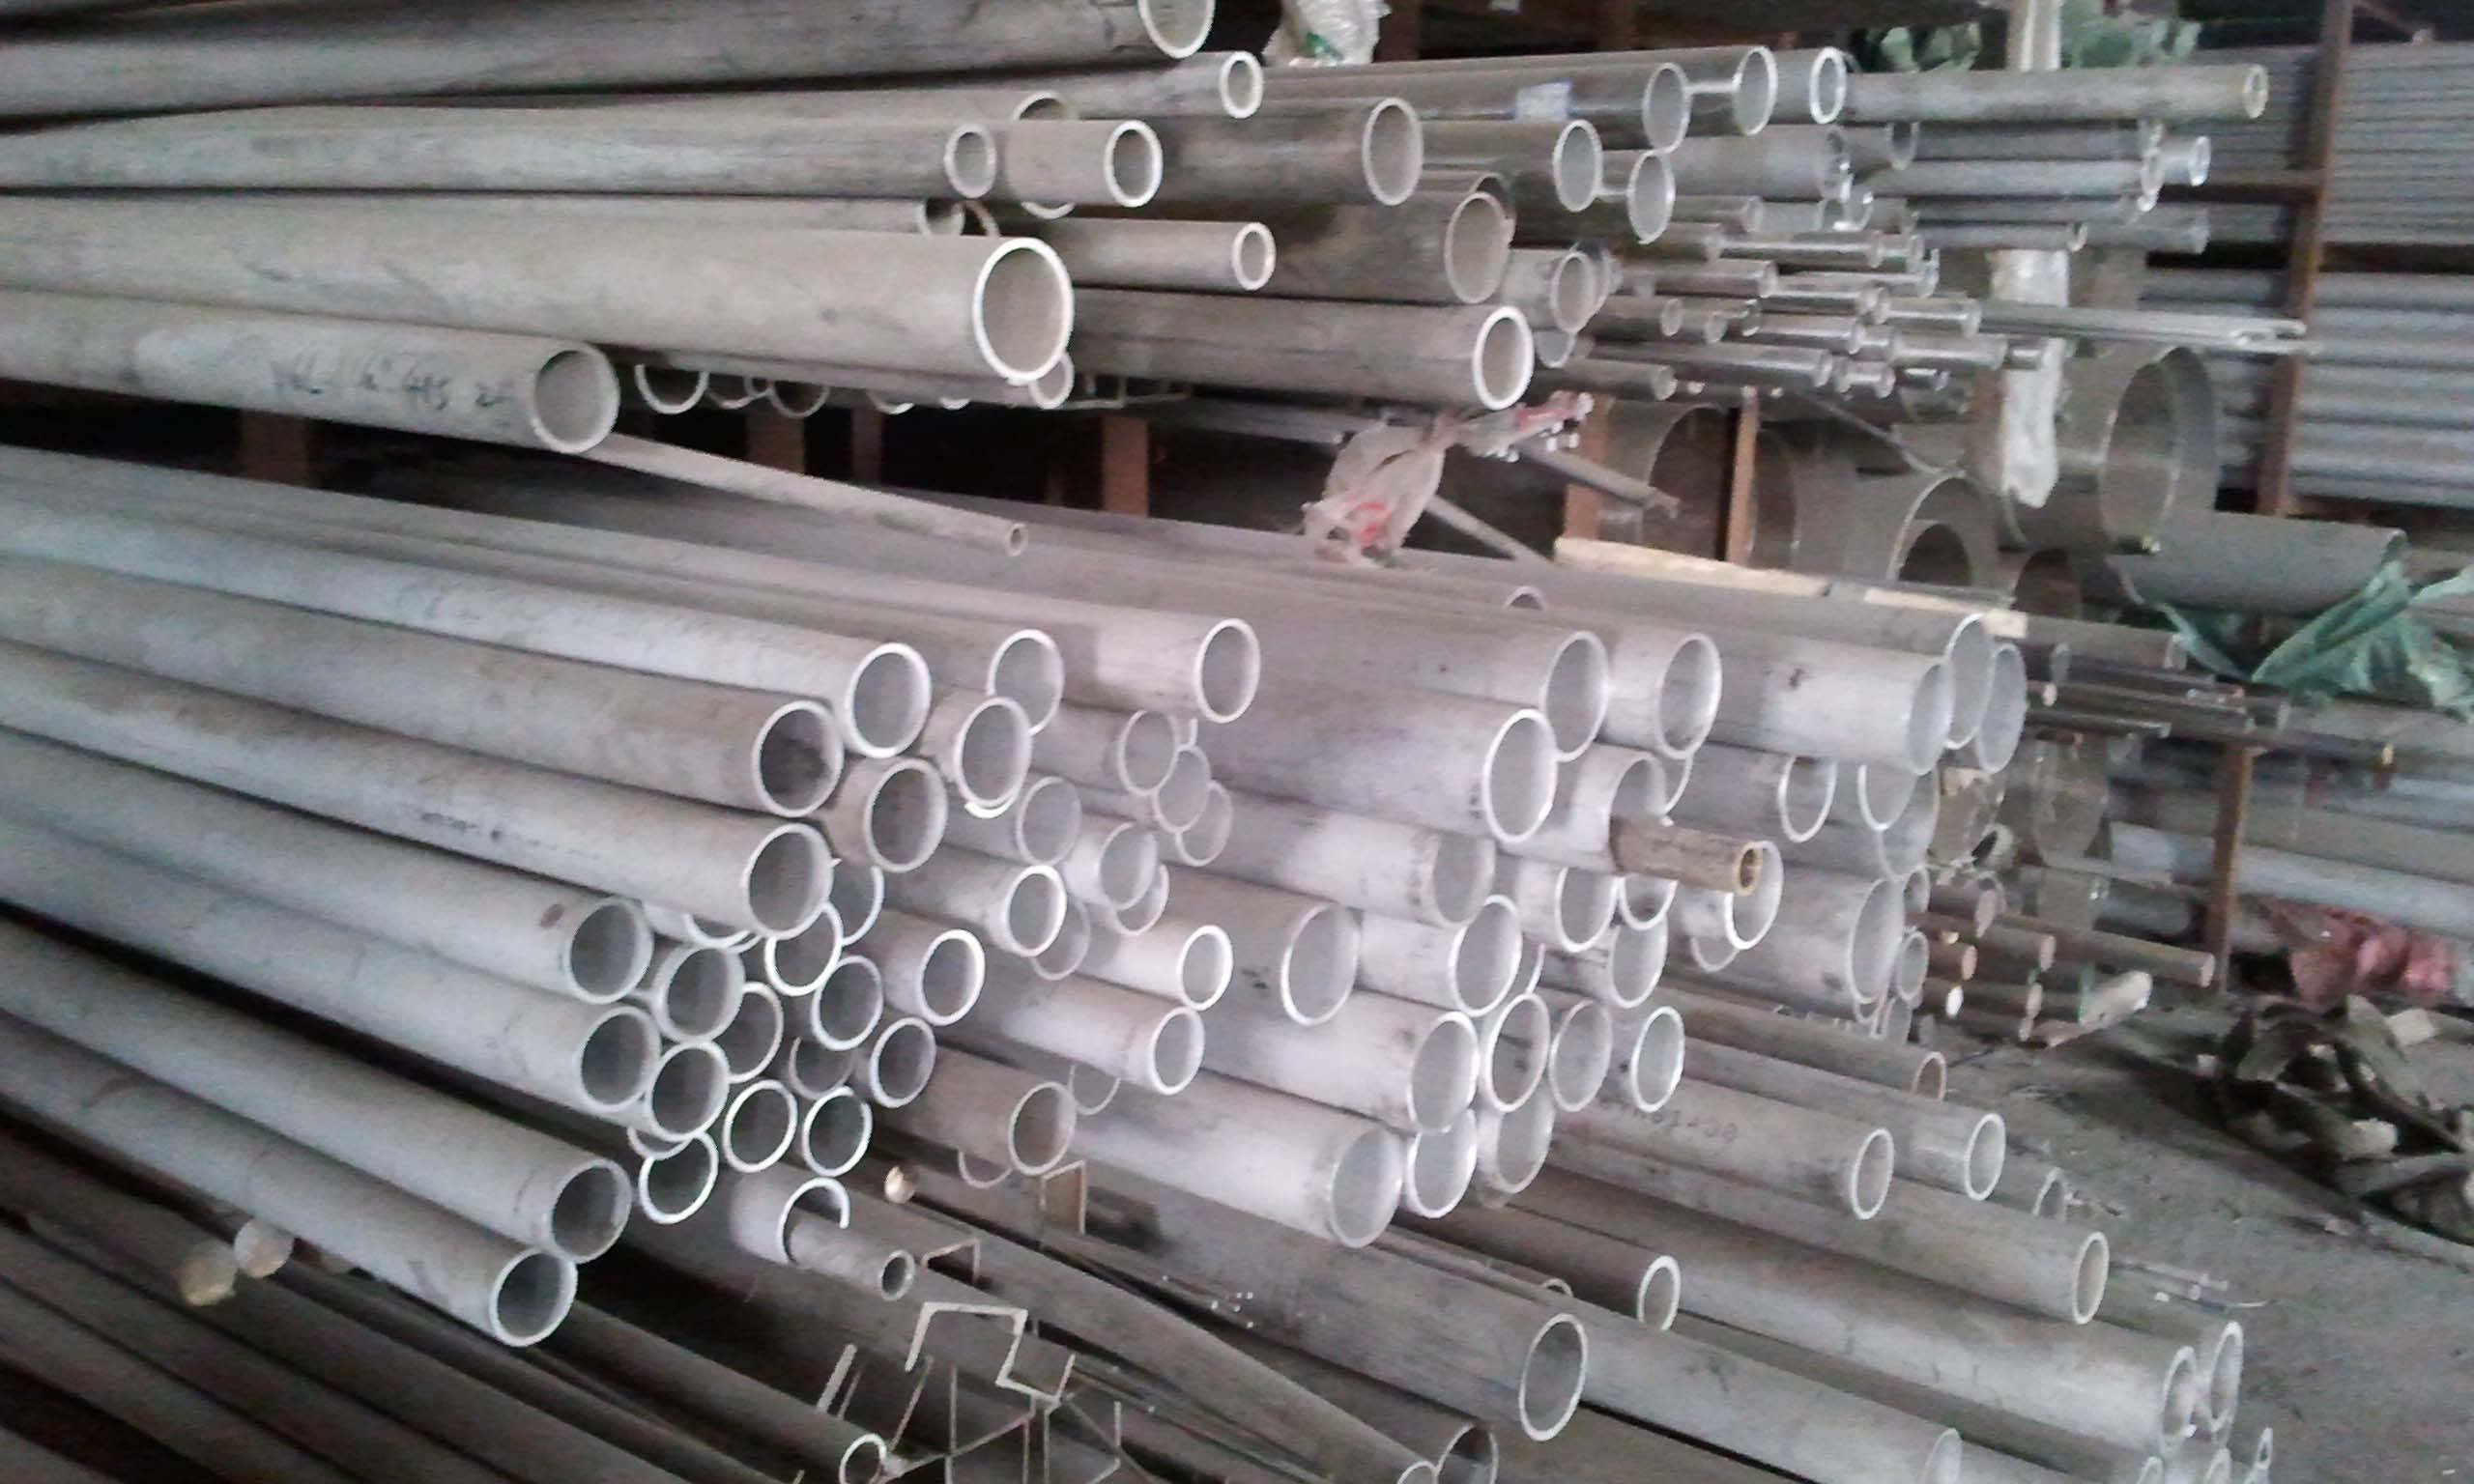 AISI 316 stainless steel pipe